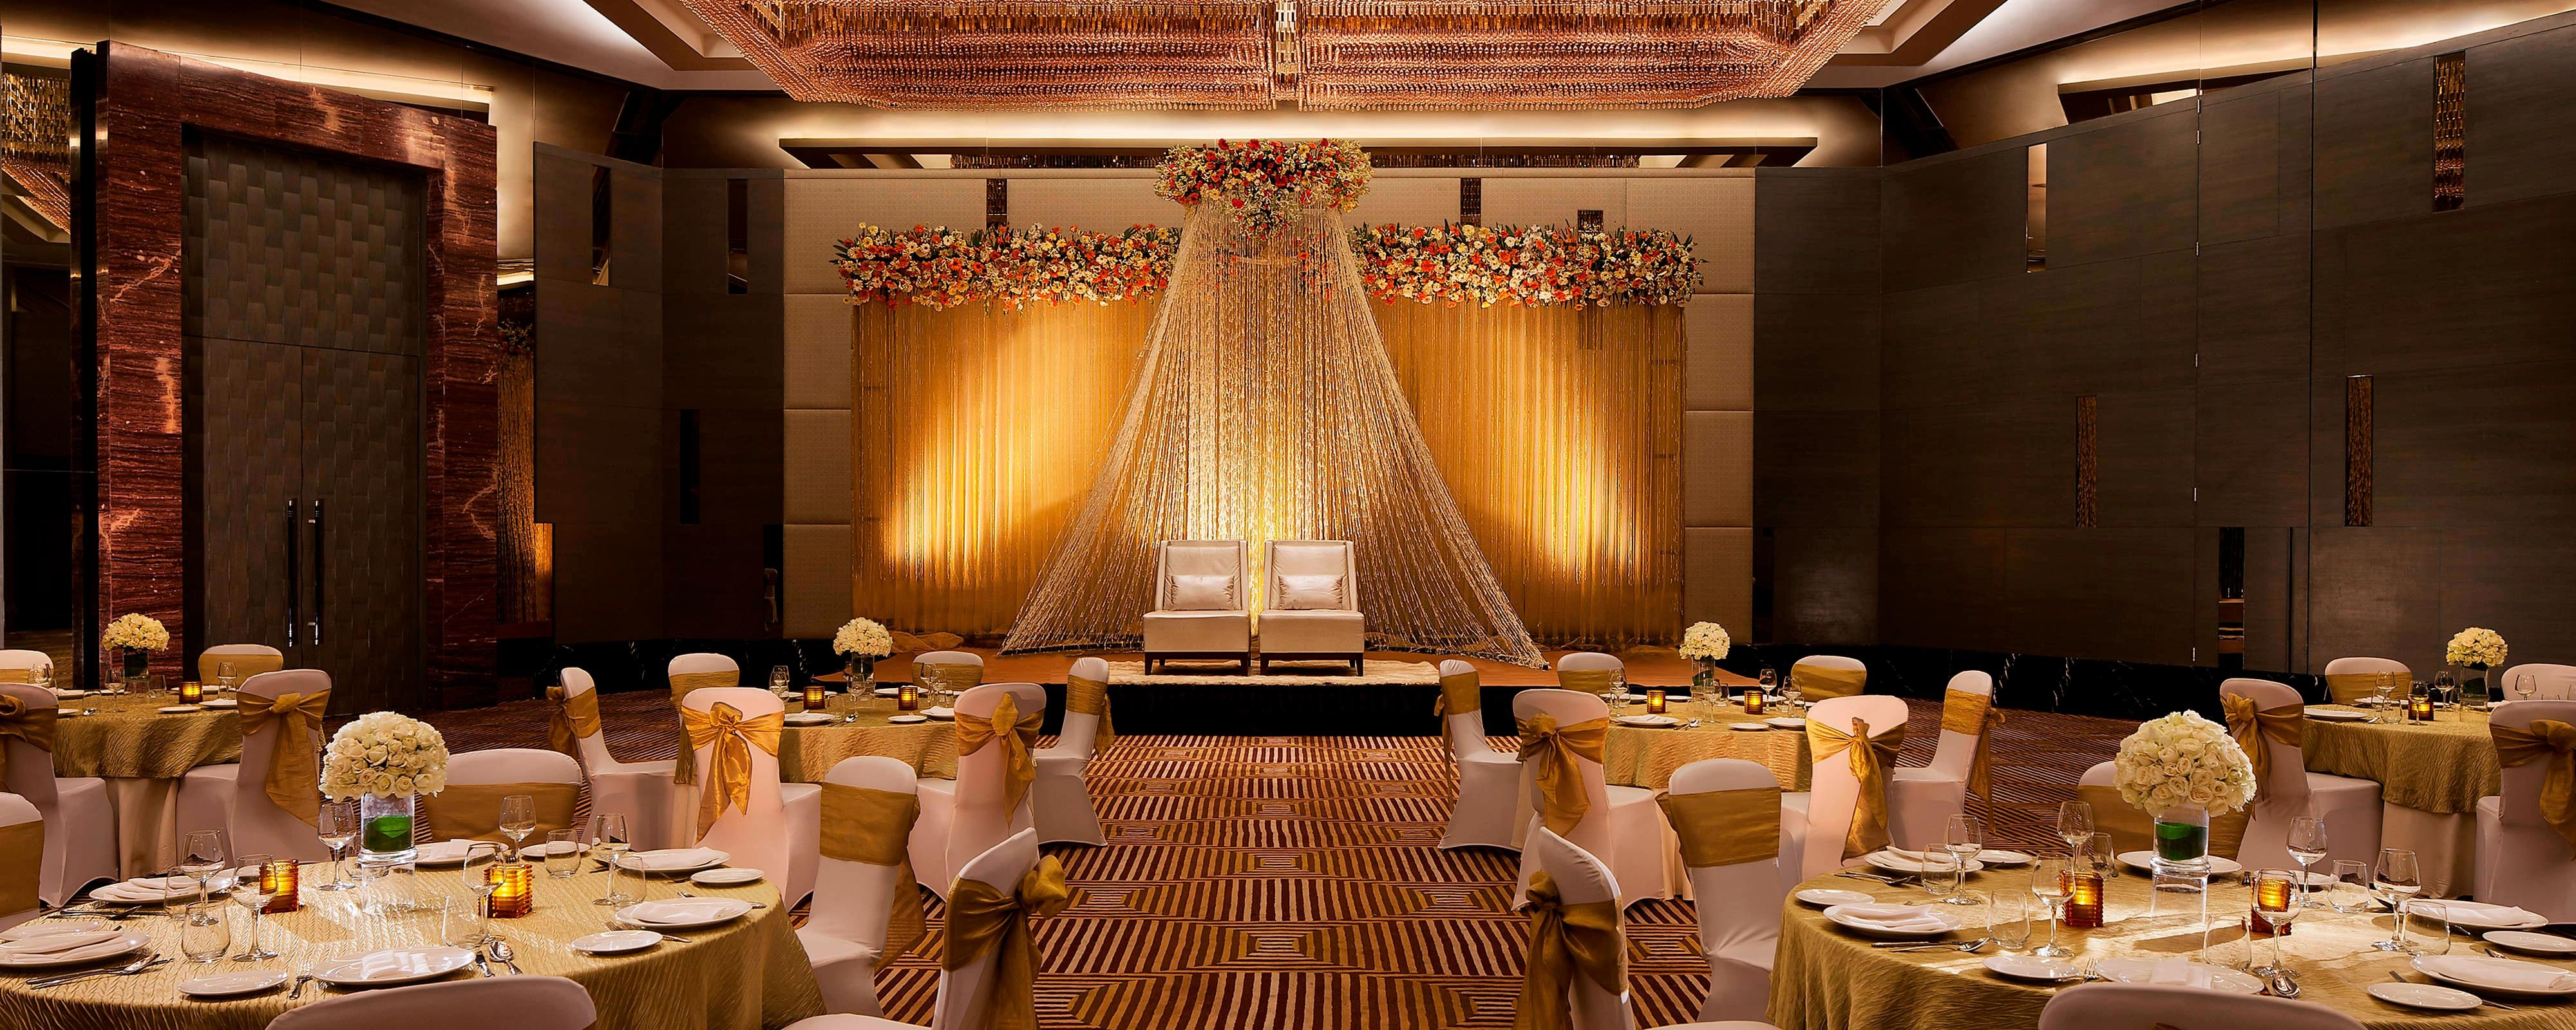 Banquet Halls In Chandigarh Wedding Venues Jw Marriott